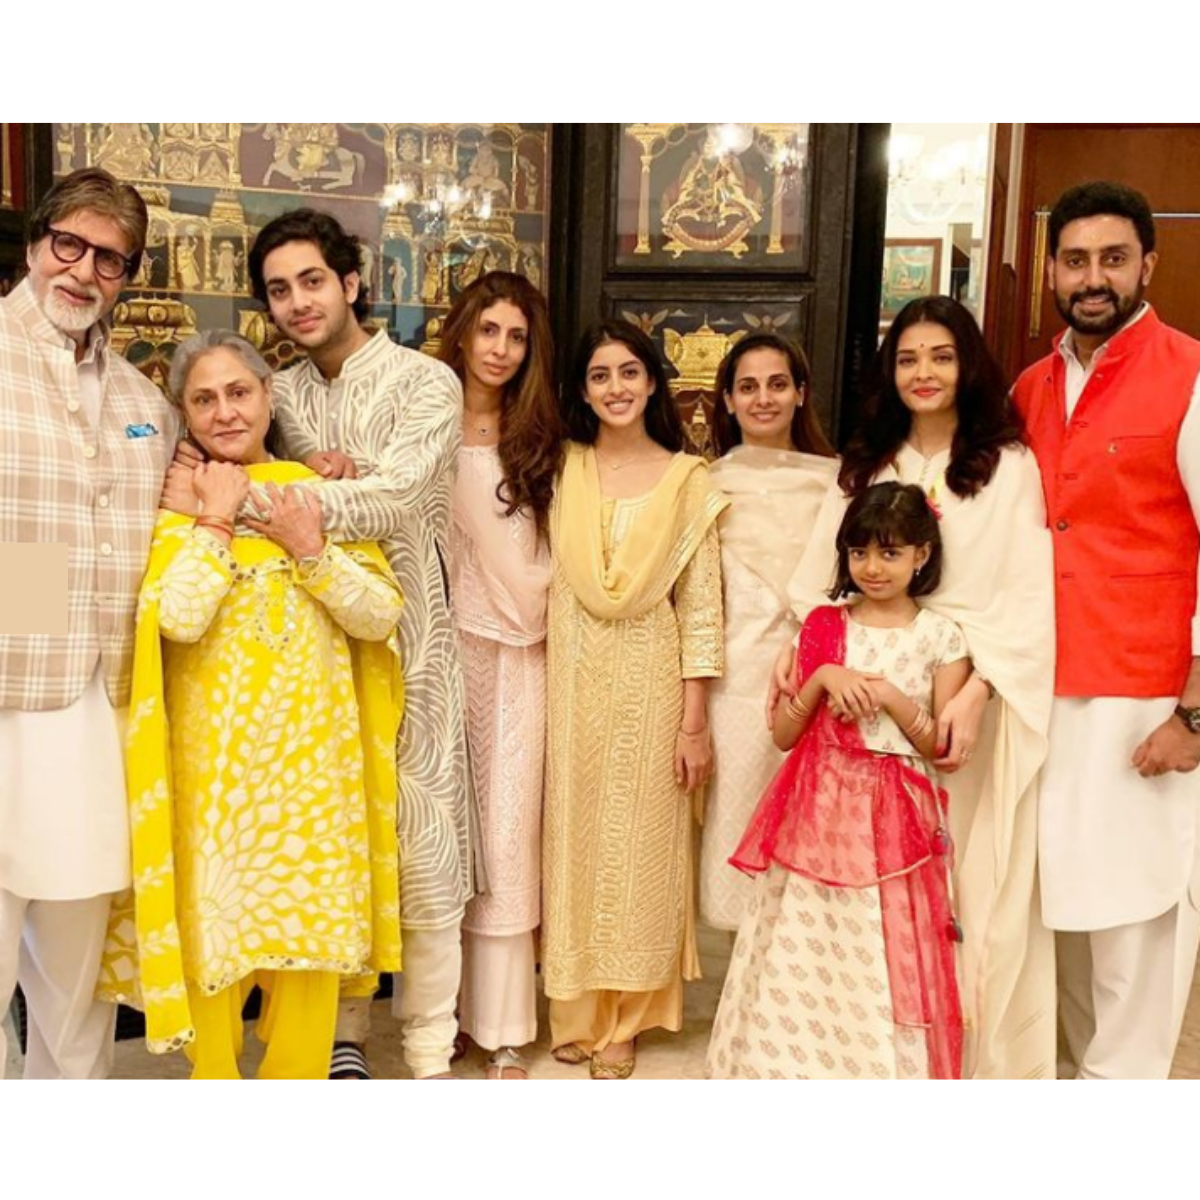 Jaya Bachchan's pictures with her family